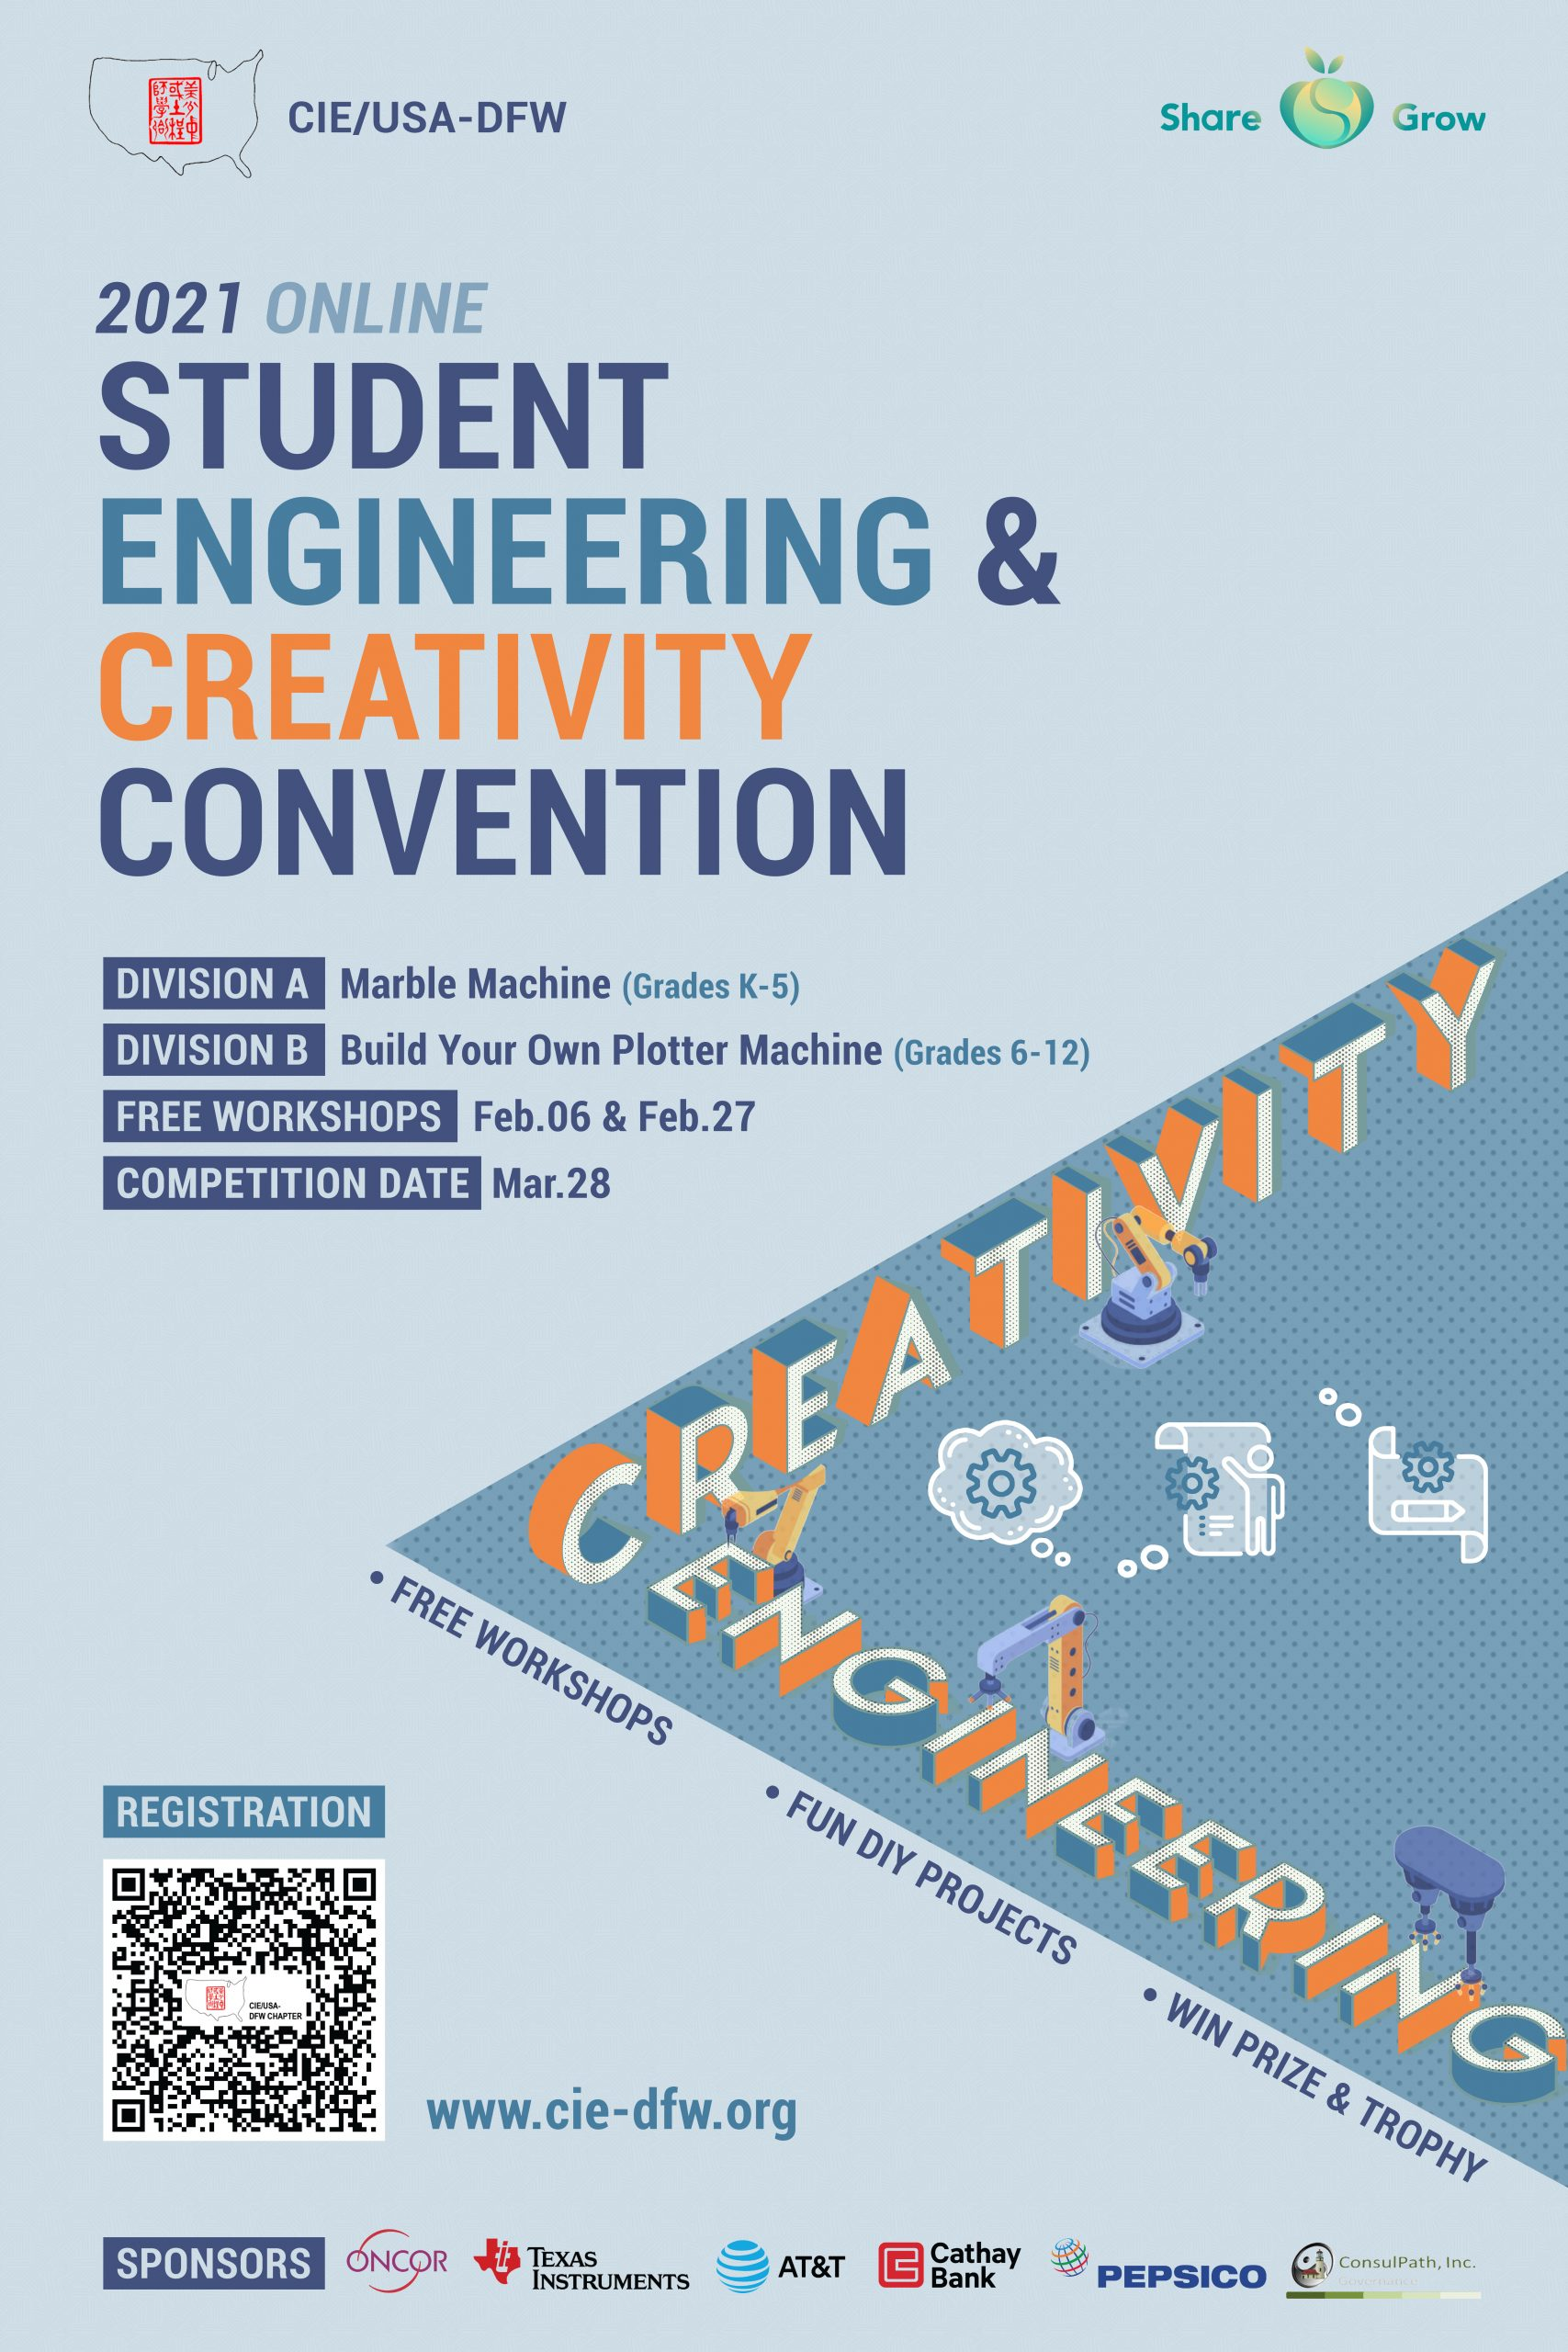 Online: 2021 CIE/USA-DFW Student Engineering & Creativity Convention (SECC)